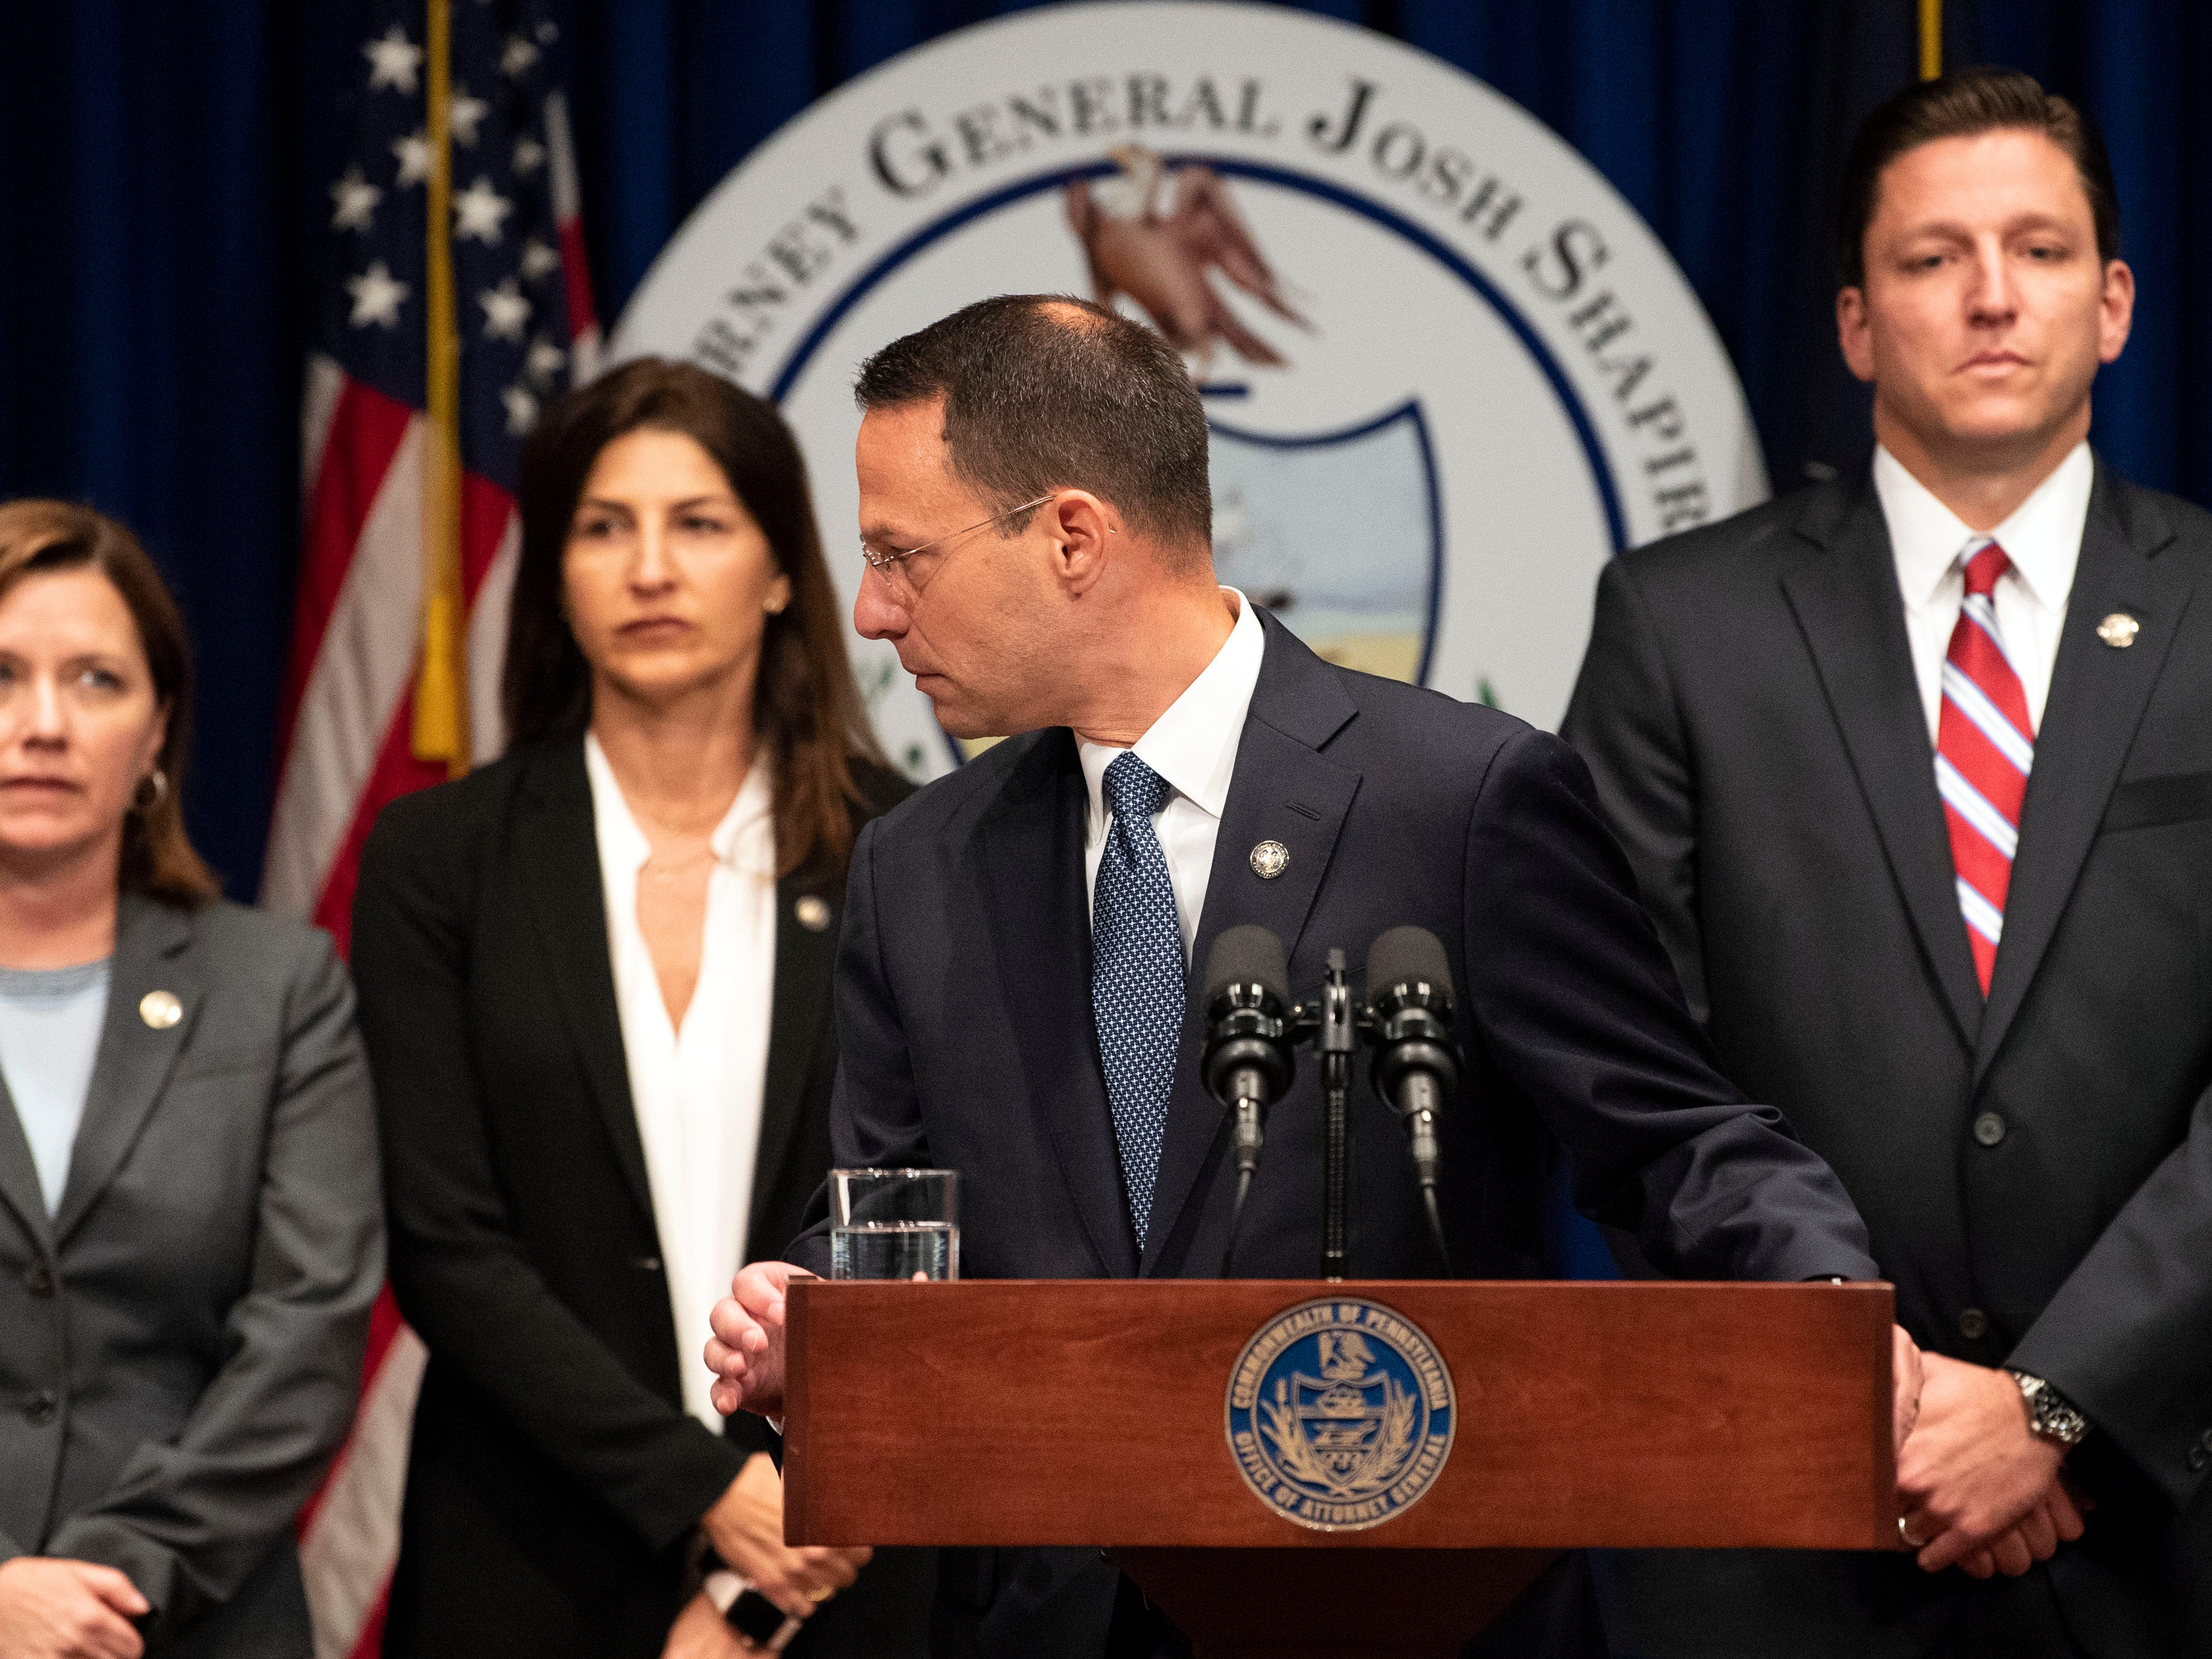 Attorney General Josh Shapiro acknowledges survivors prior to outlining the findings of the grand jury investigation into six catholic diocese in Pennsylvania on Tuesday, August 14, 2018. The grand jury's report detailed child sexual abuse and coverup by more than 300 clergy.